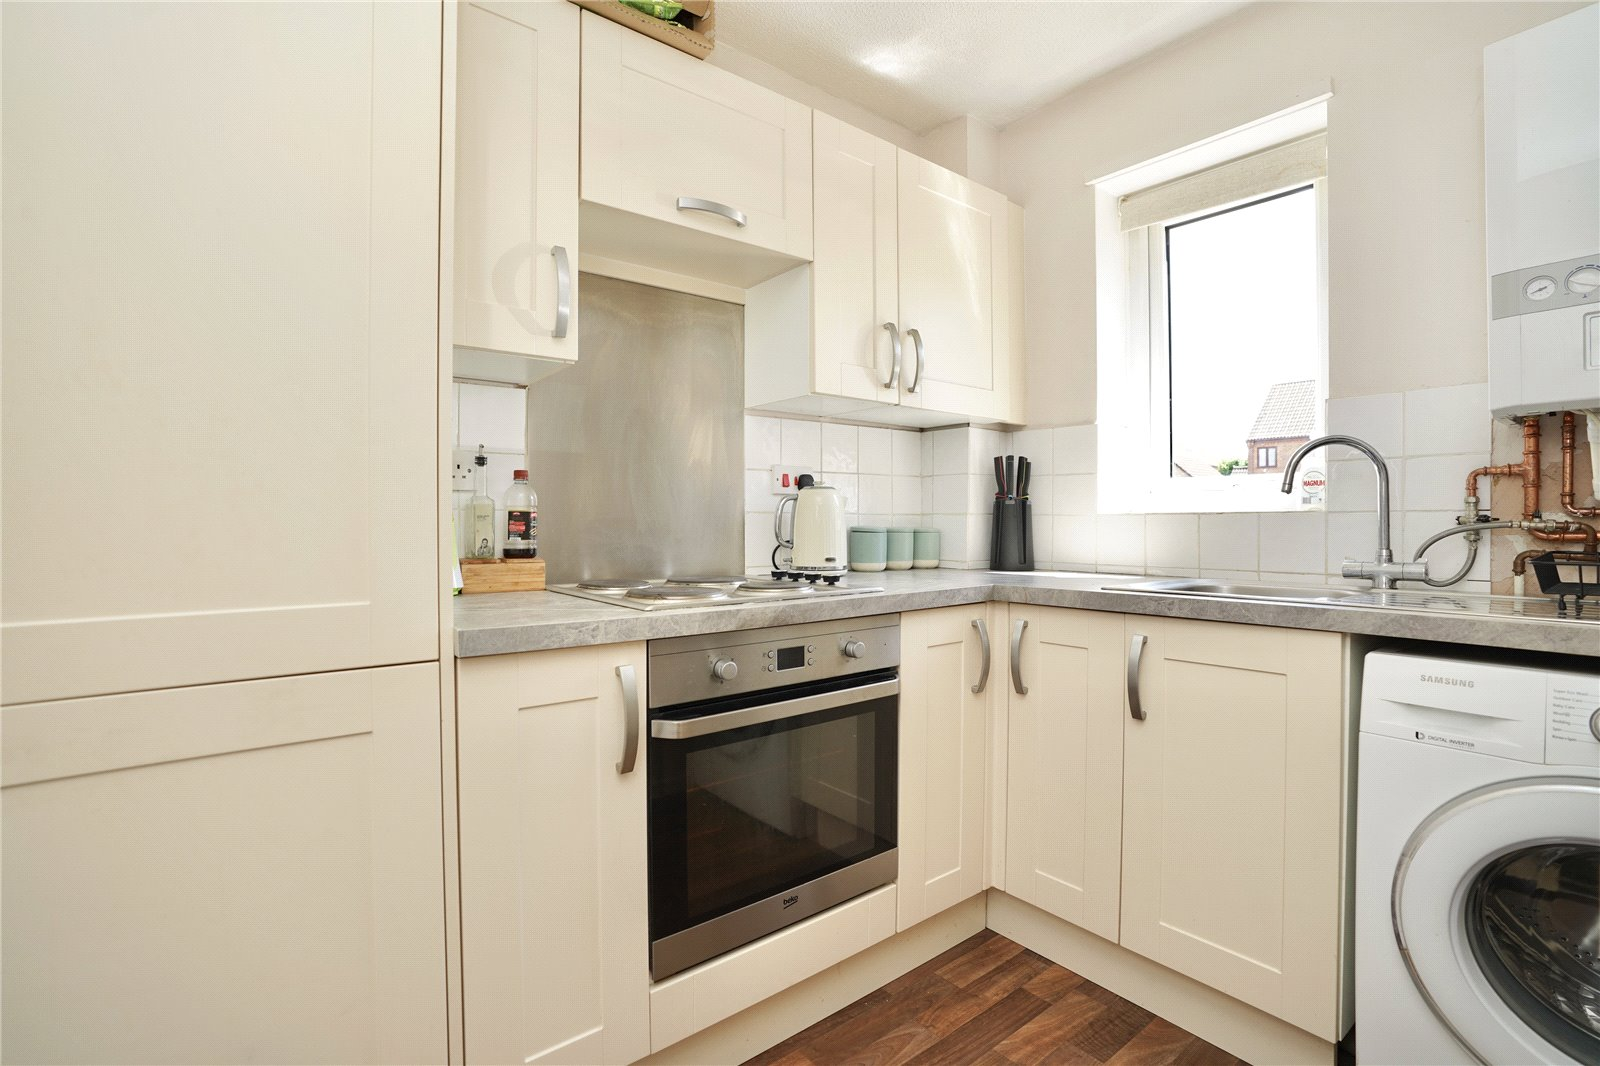 1 bed house for sale in Cornwallis Drive, Eaton Socon 0